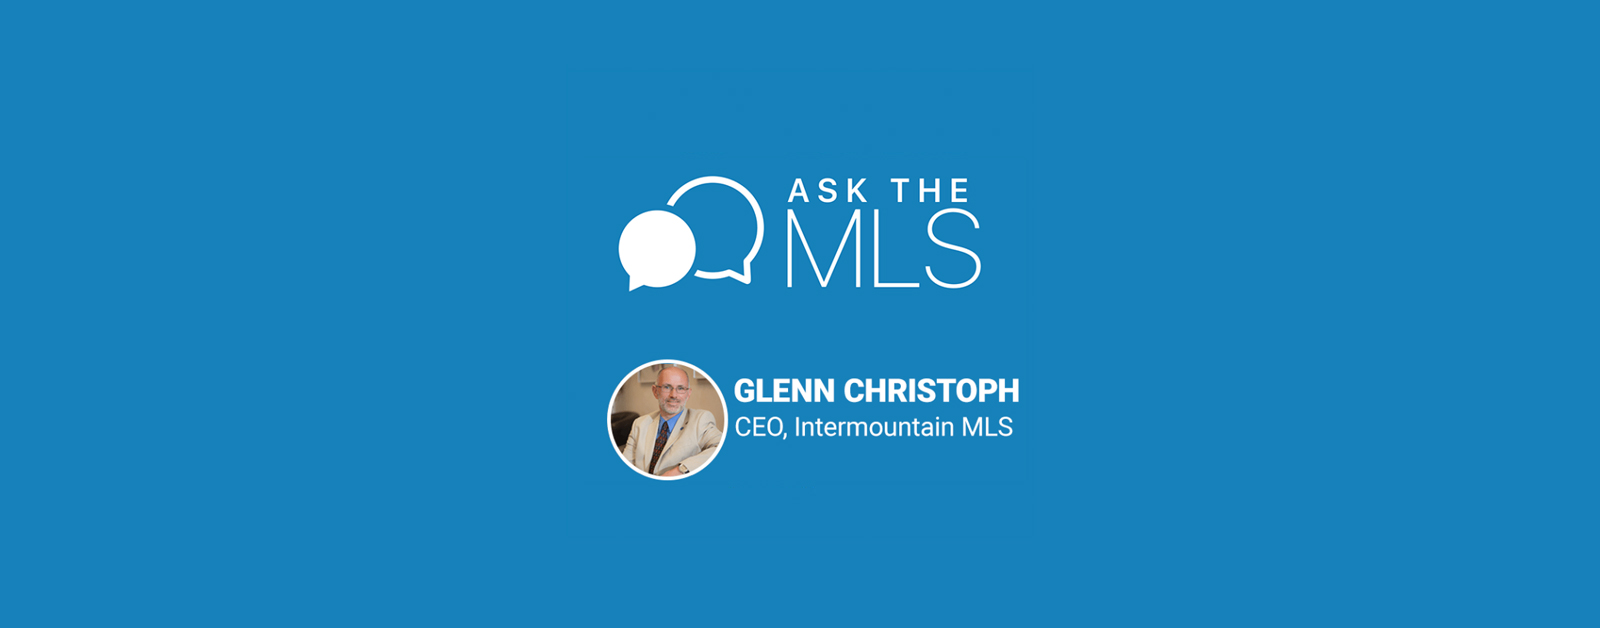 Ask-the-MLS Glenn Christoph